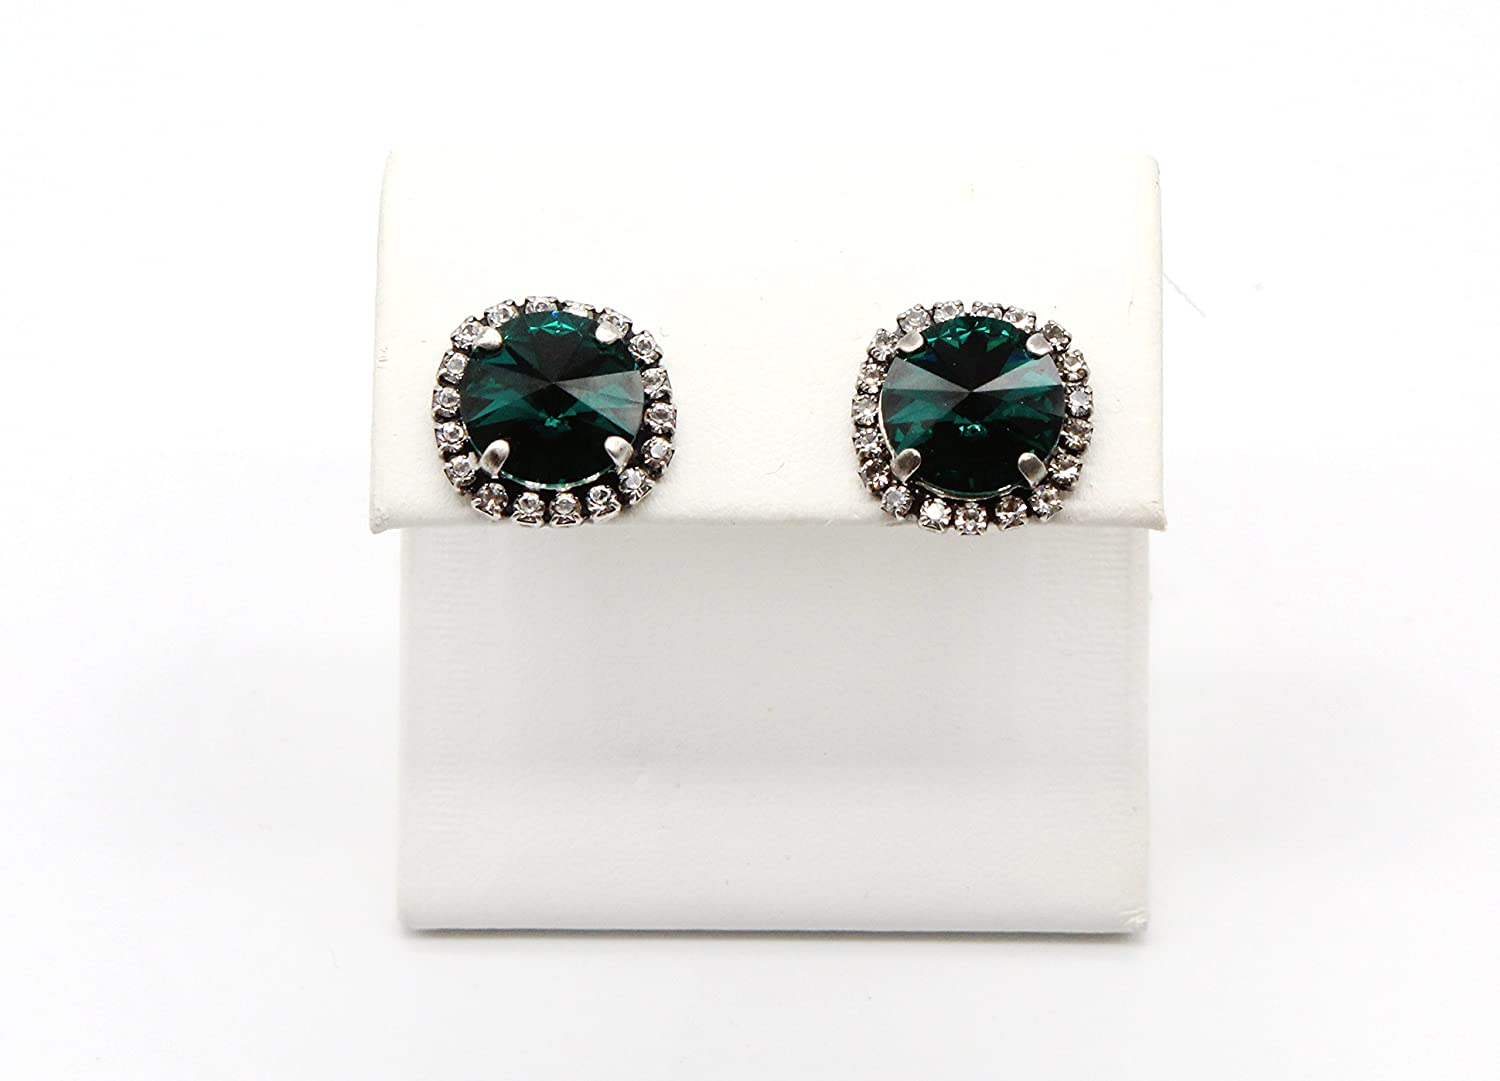 Emerald Save money Green Swarovski Crystal Elements a NEW before selling Earrings with Ha Stud